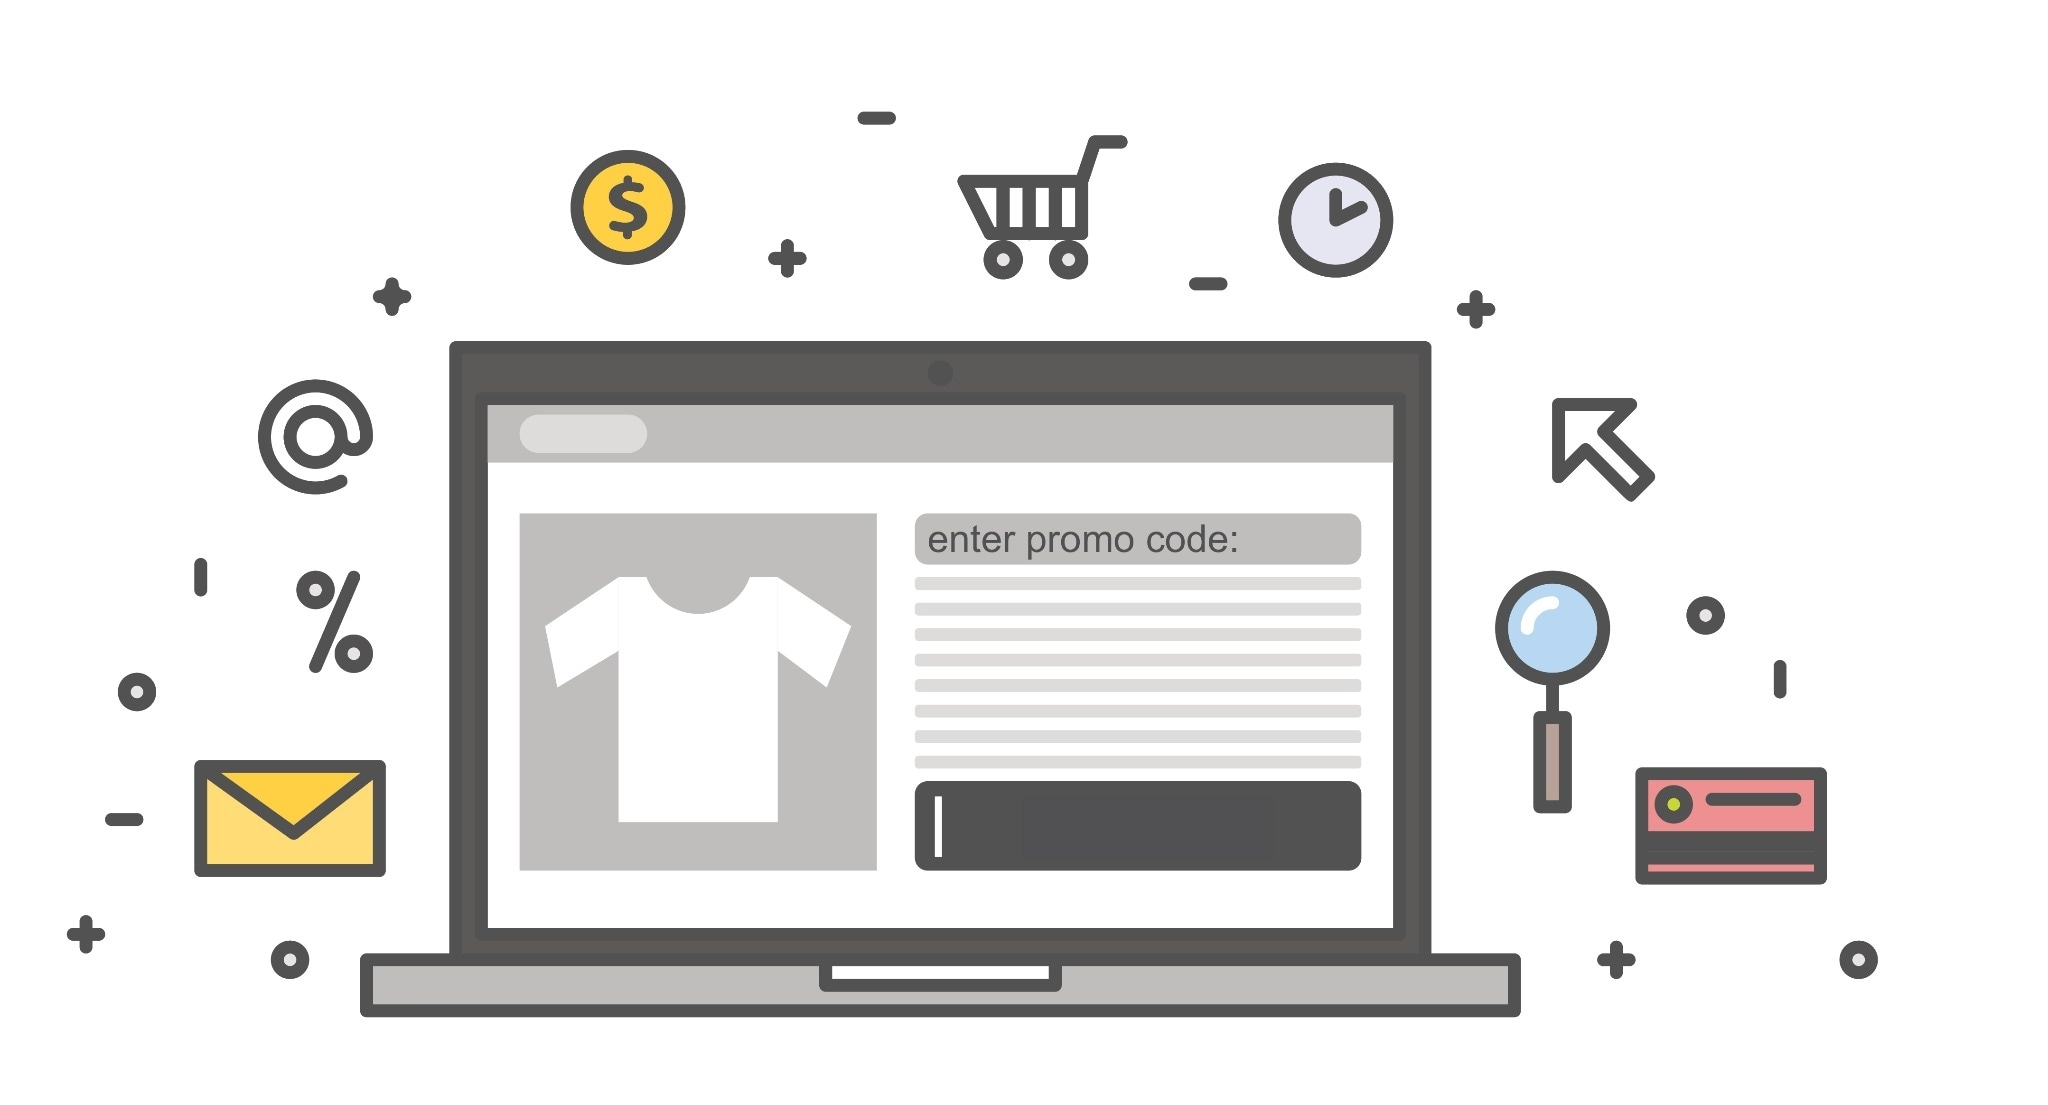 How the Coupon Pros Find Promo Codes (Hint: It's Not Google)